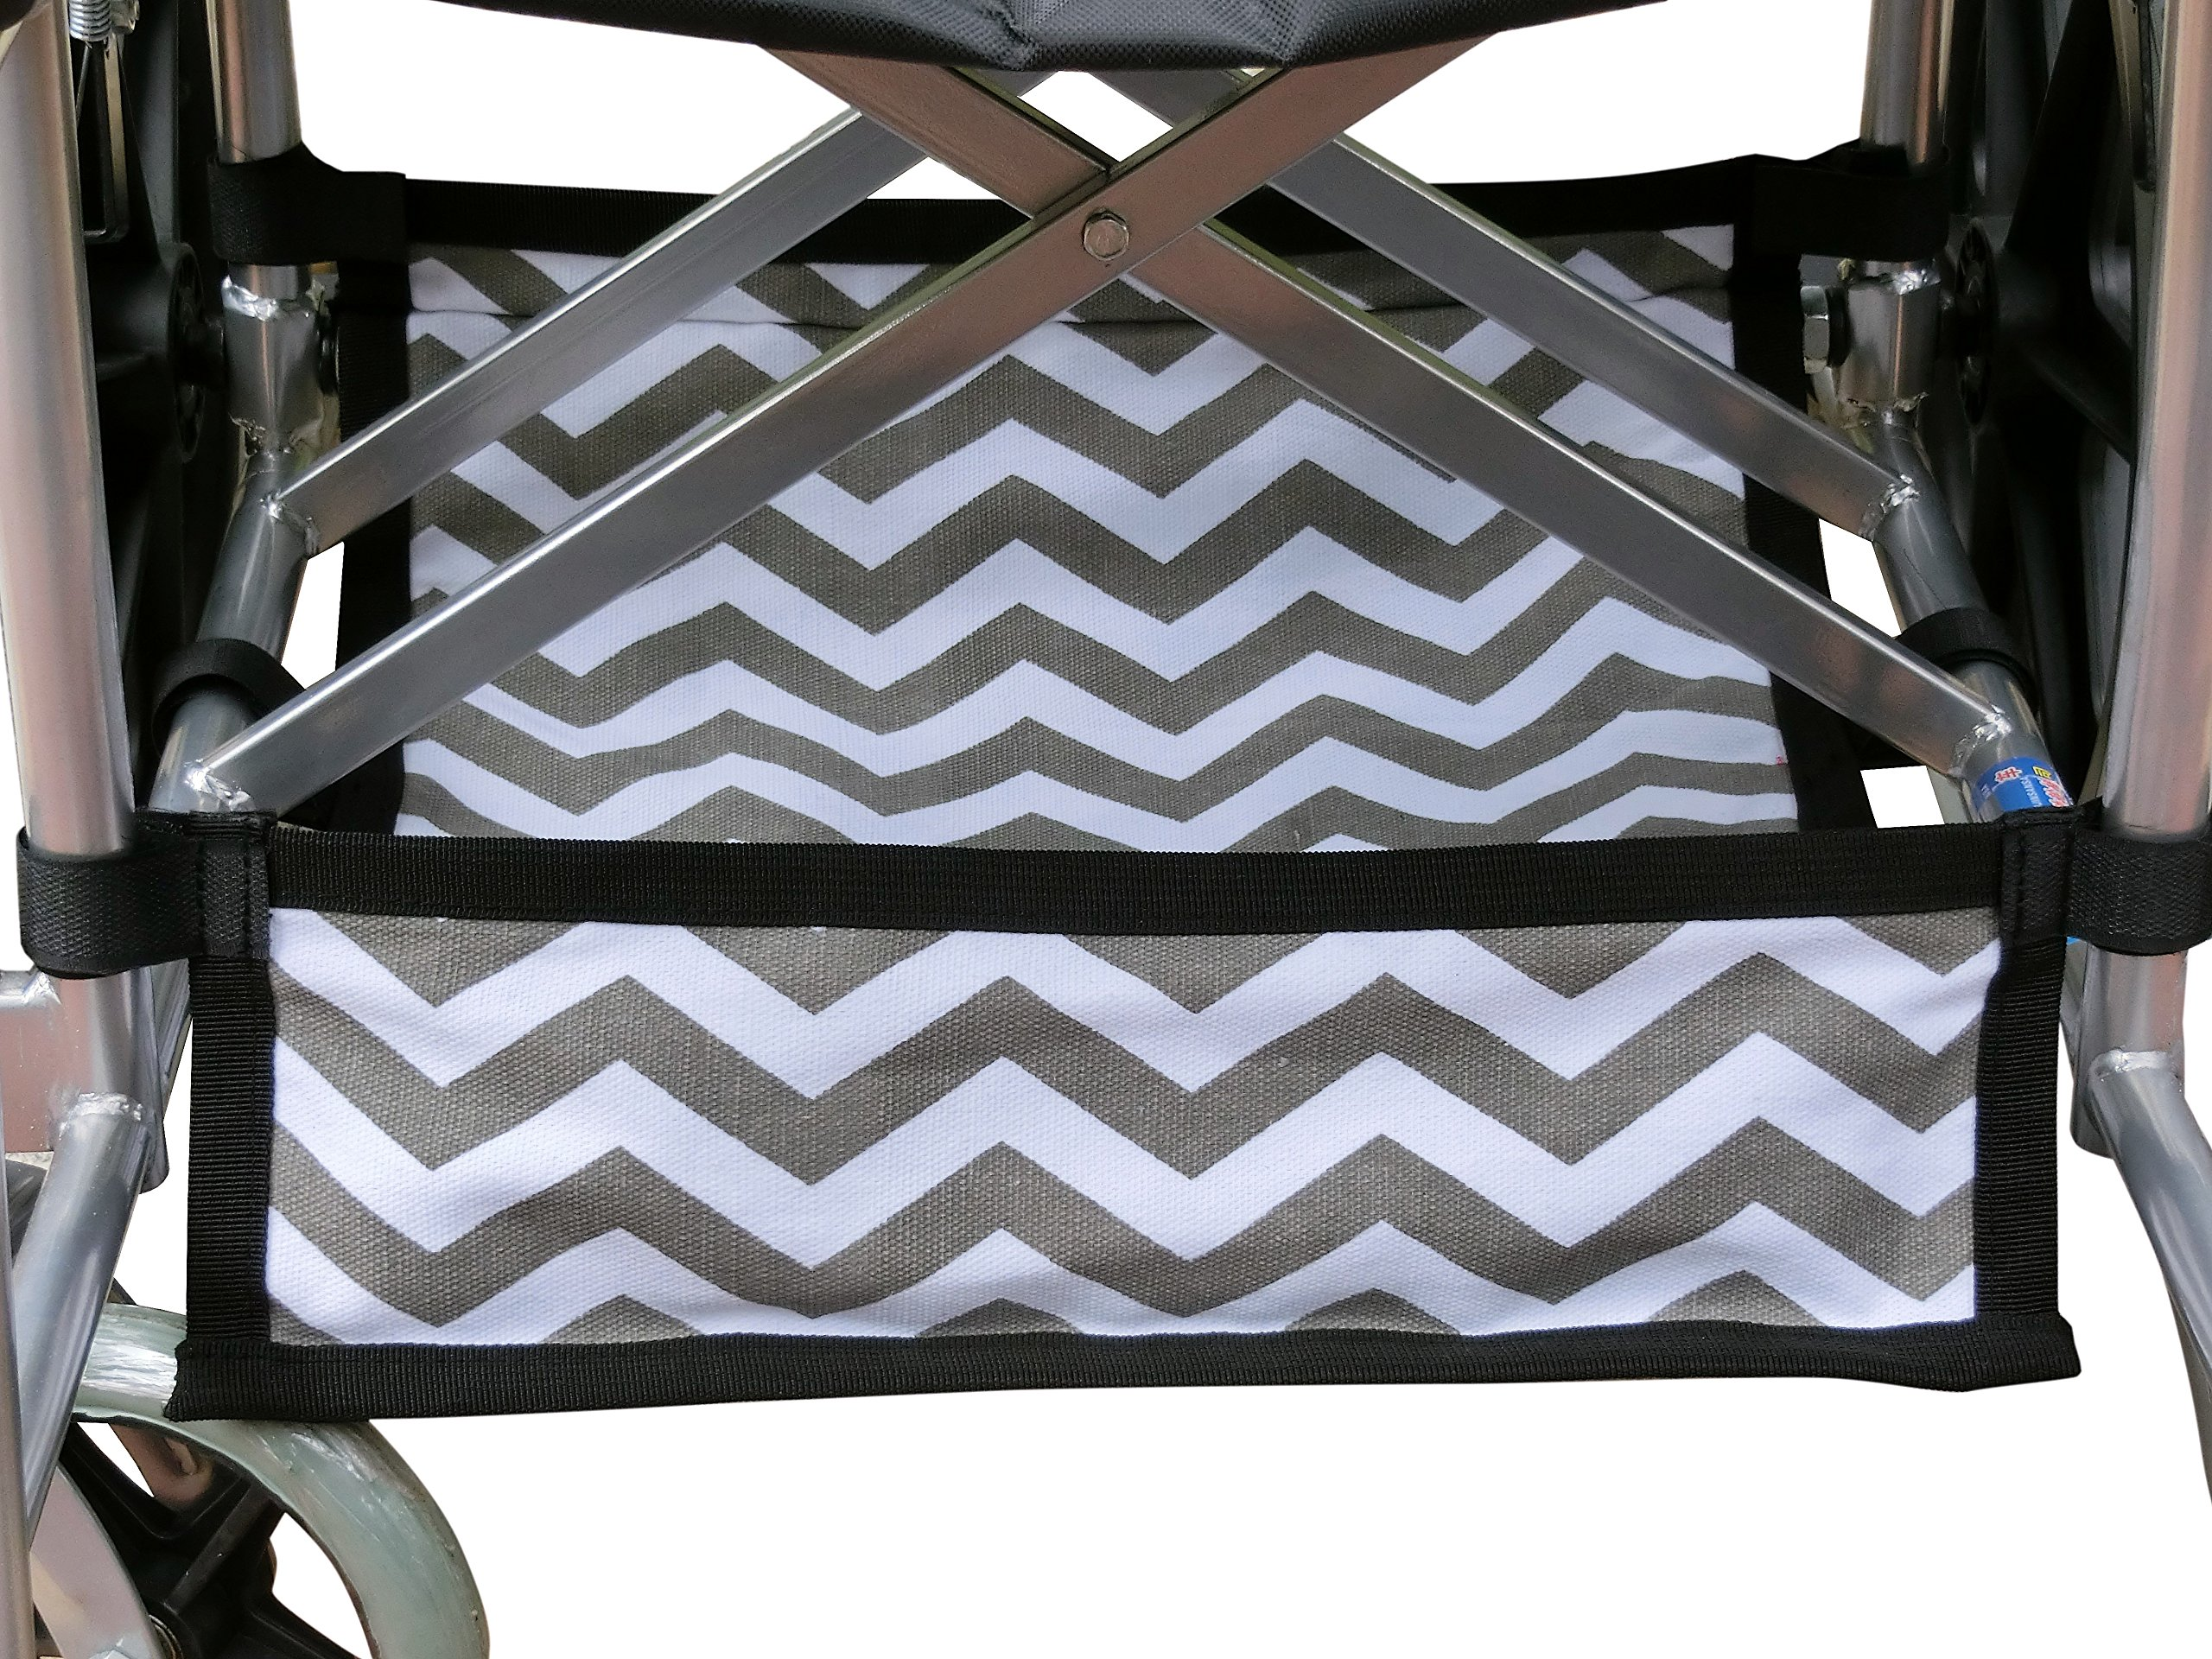 Foldable Wheelchair Under Seat Storage Bag, Wheelchair Underneath Carrier, Wheelchair Under Seat Basket, Wheelchair Bag, Wheelchair Accessories, Wheelchair Underneath Bag, Chevron Cotton Canvas